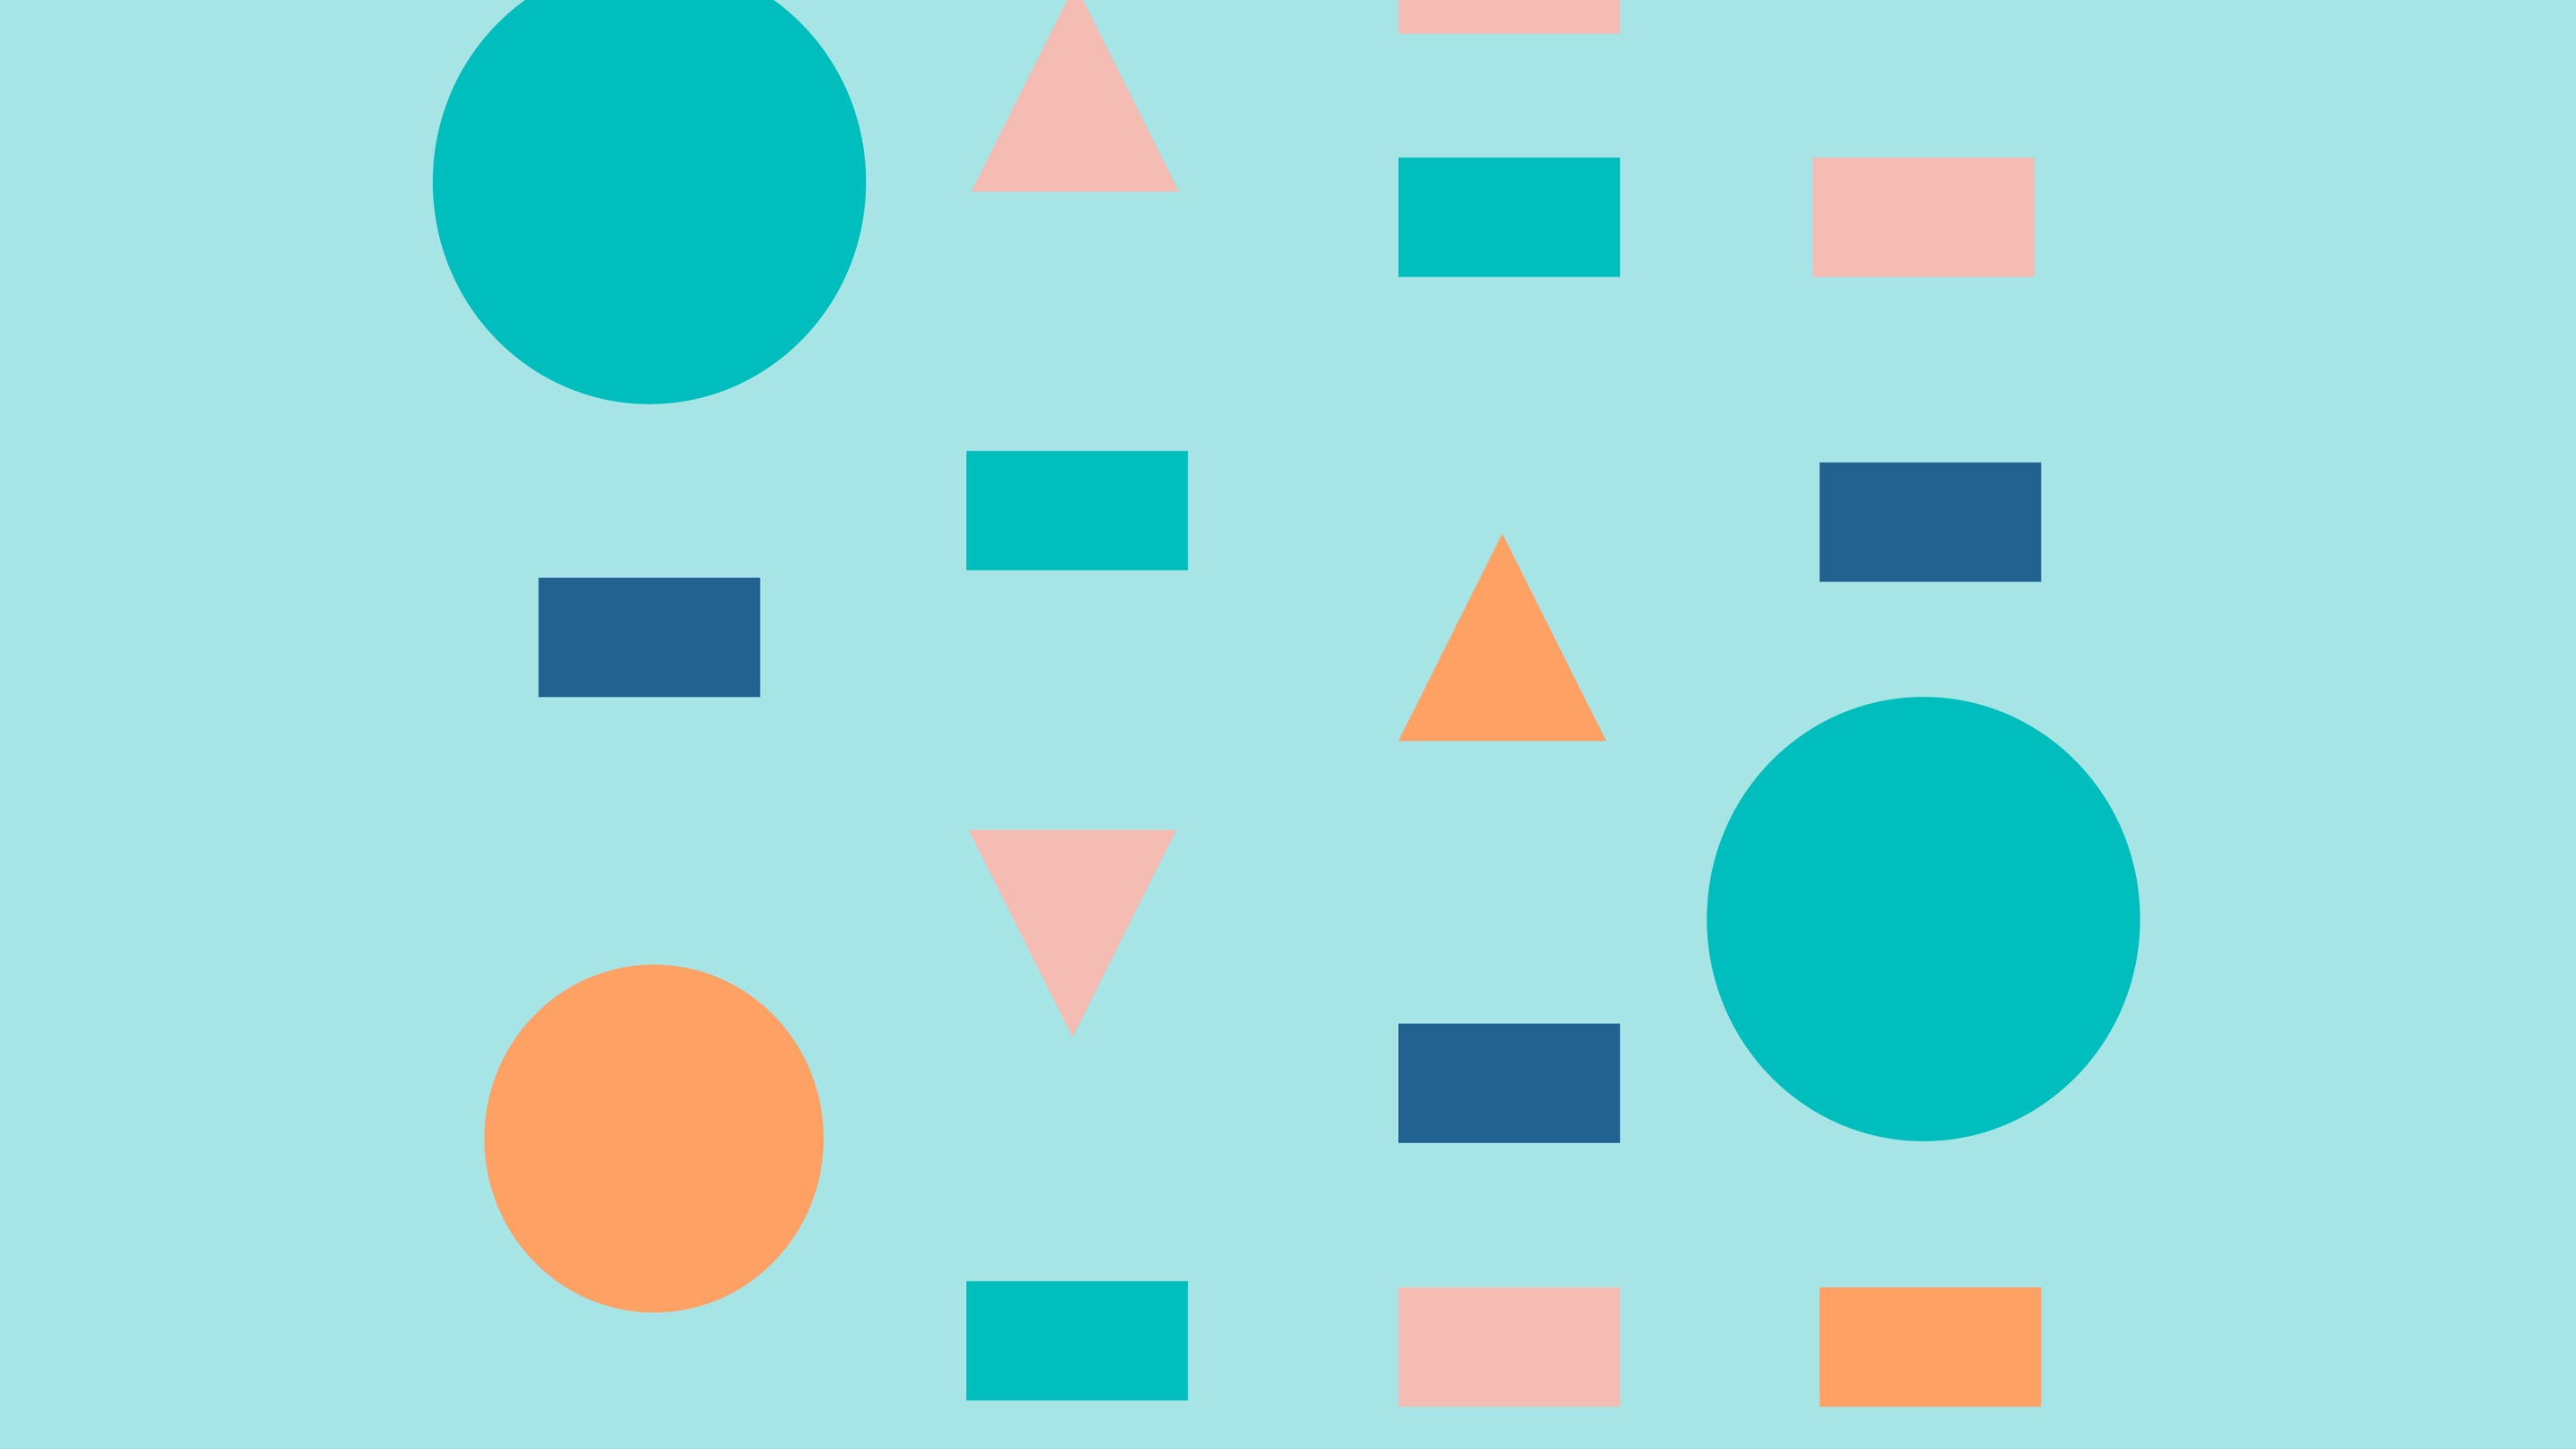 Various shapes in different colors on a light blue background.